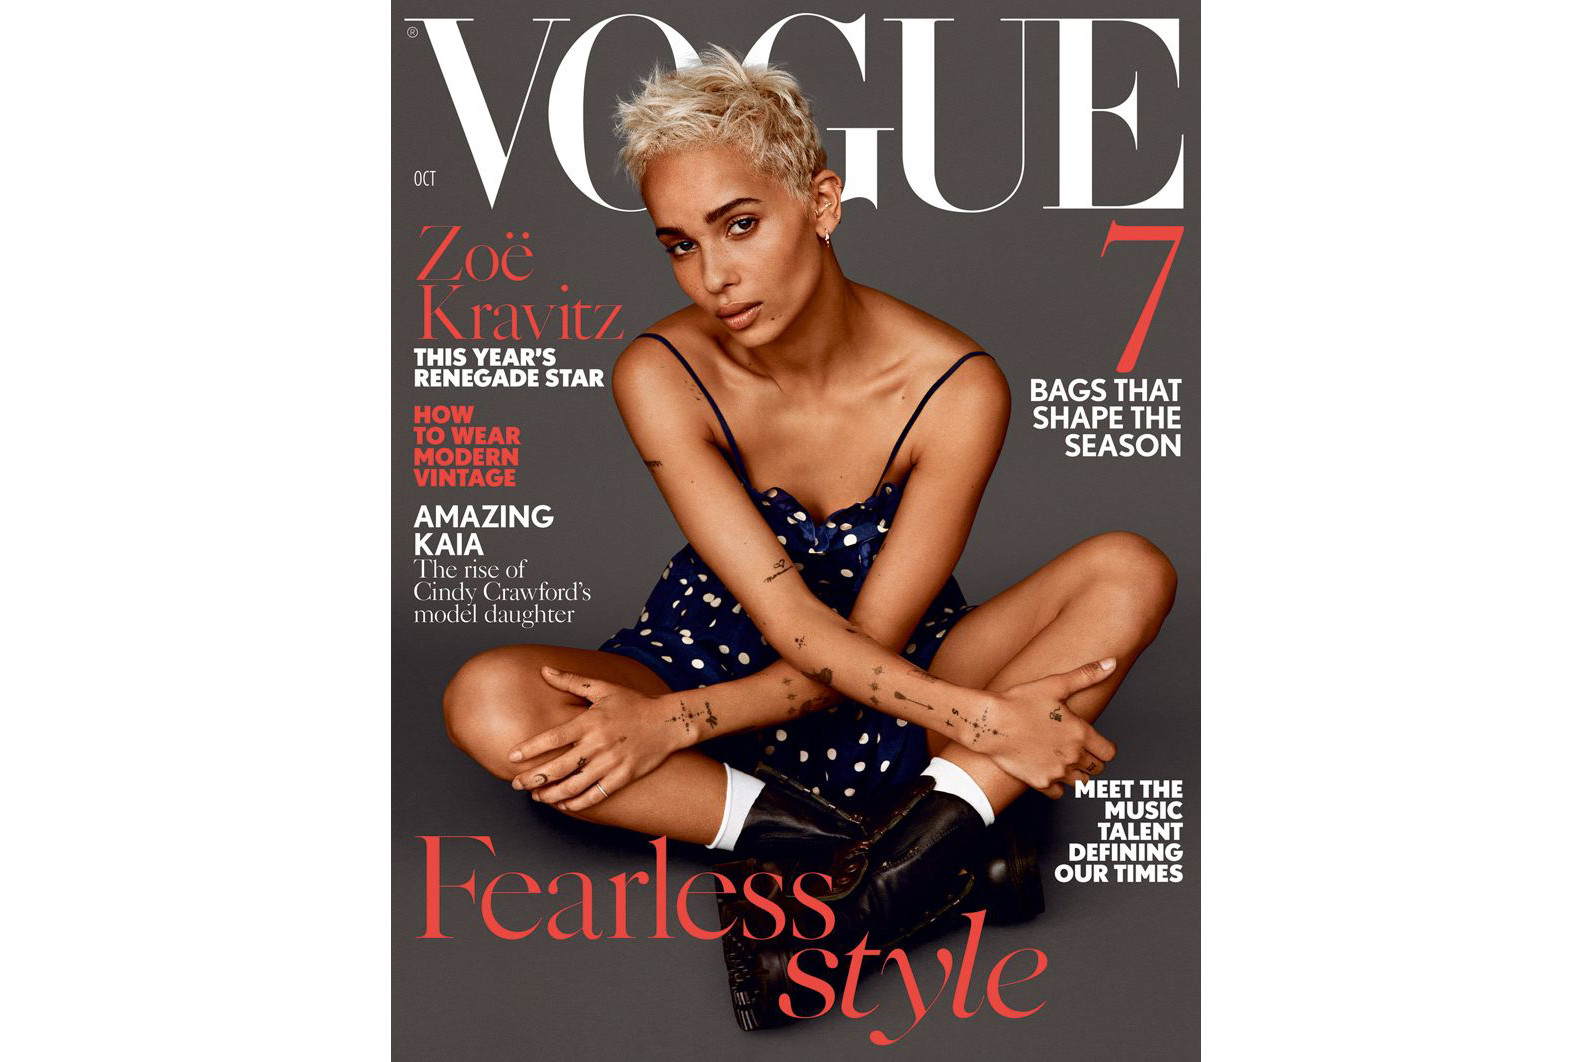 Zoe Kravitz British Vogue 2017 October Cover